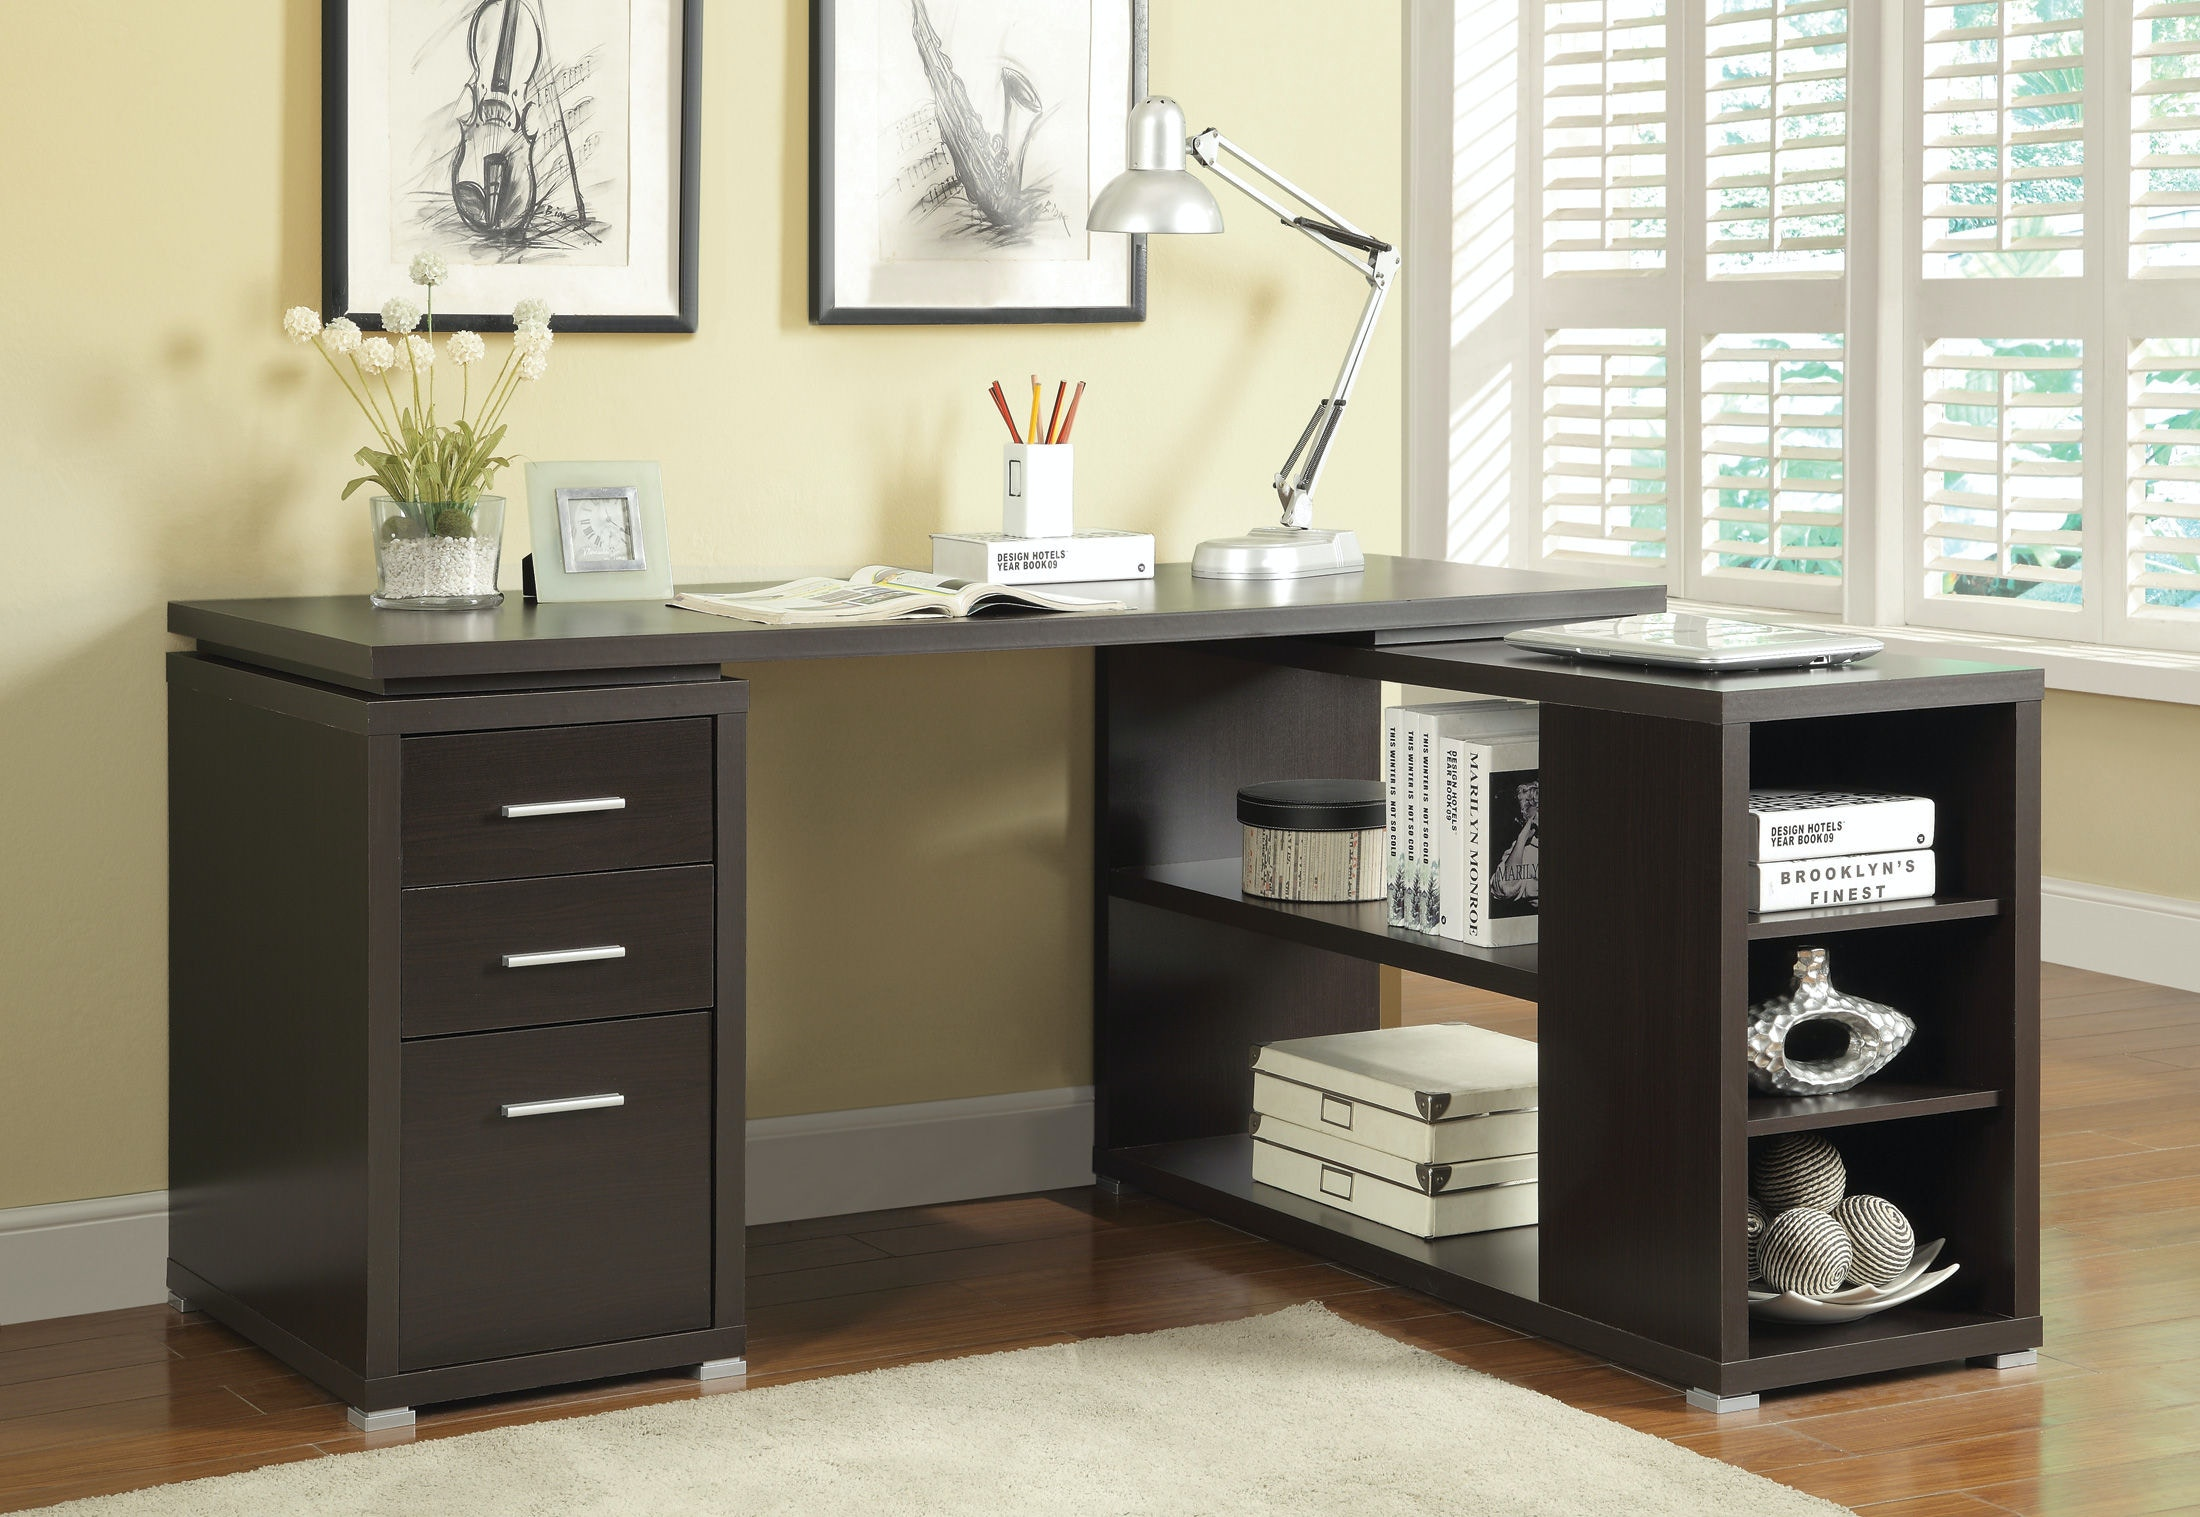 Great Coaster Home Office Office Desk 800517   Turner Furniture Company   Avon  Park And Sebring, FL